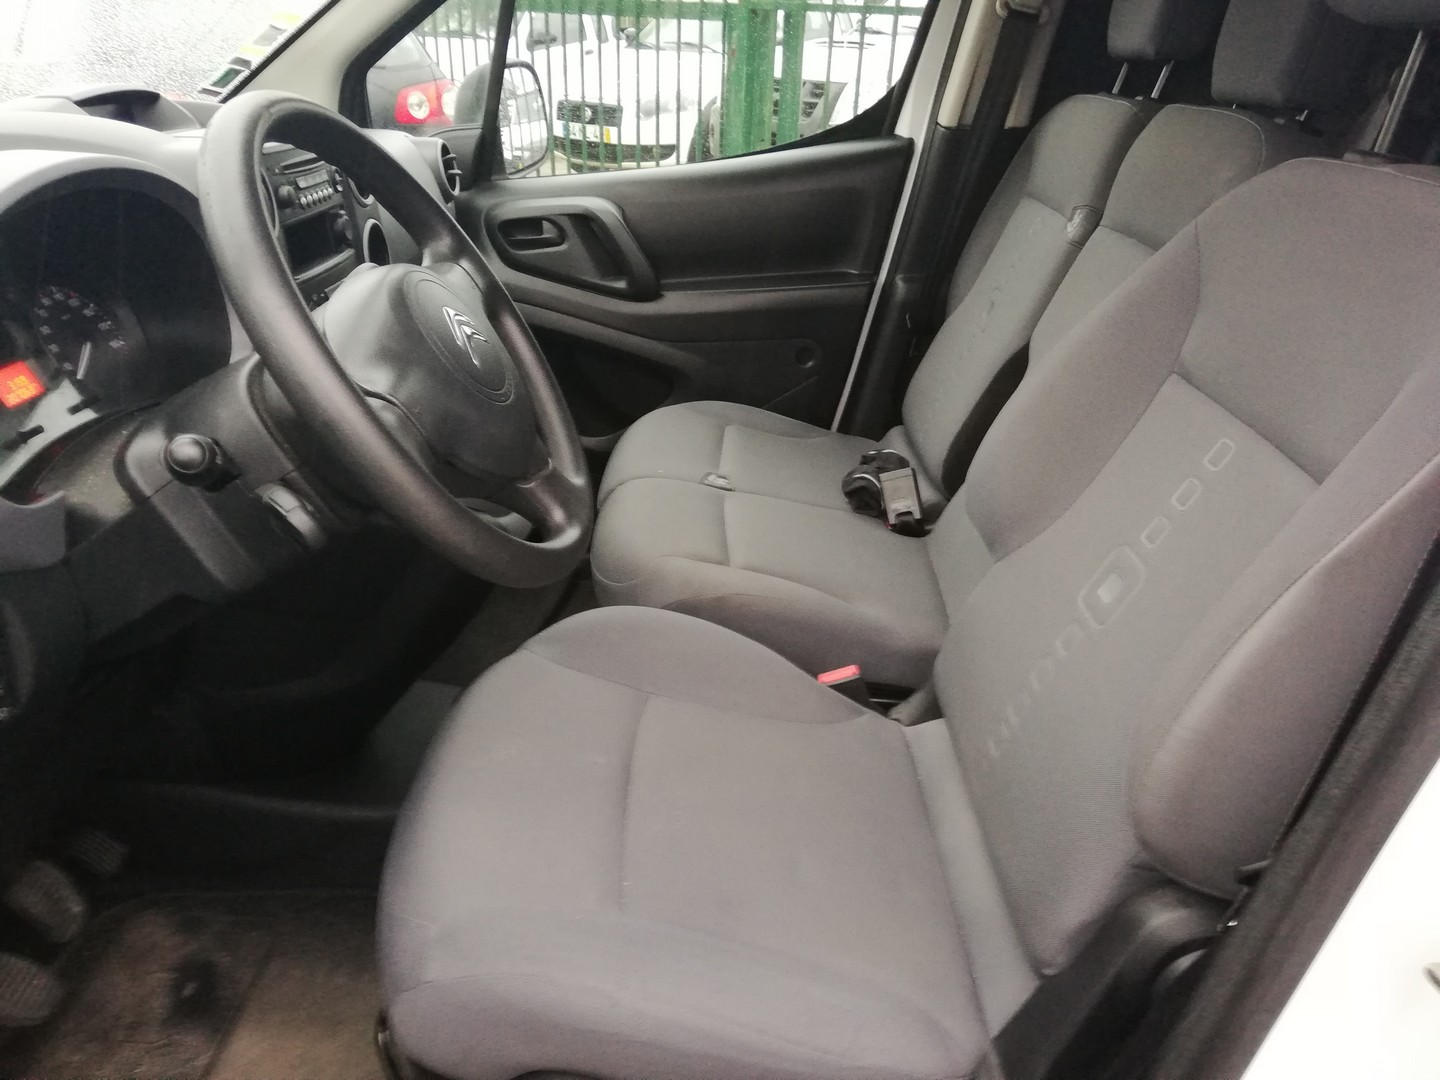 Citroen - Berlingo 1.6 HDI 3 Lugares Iva Dedutivel